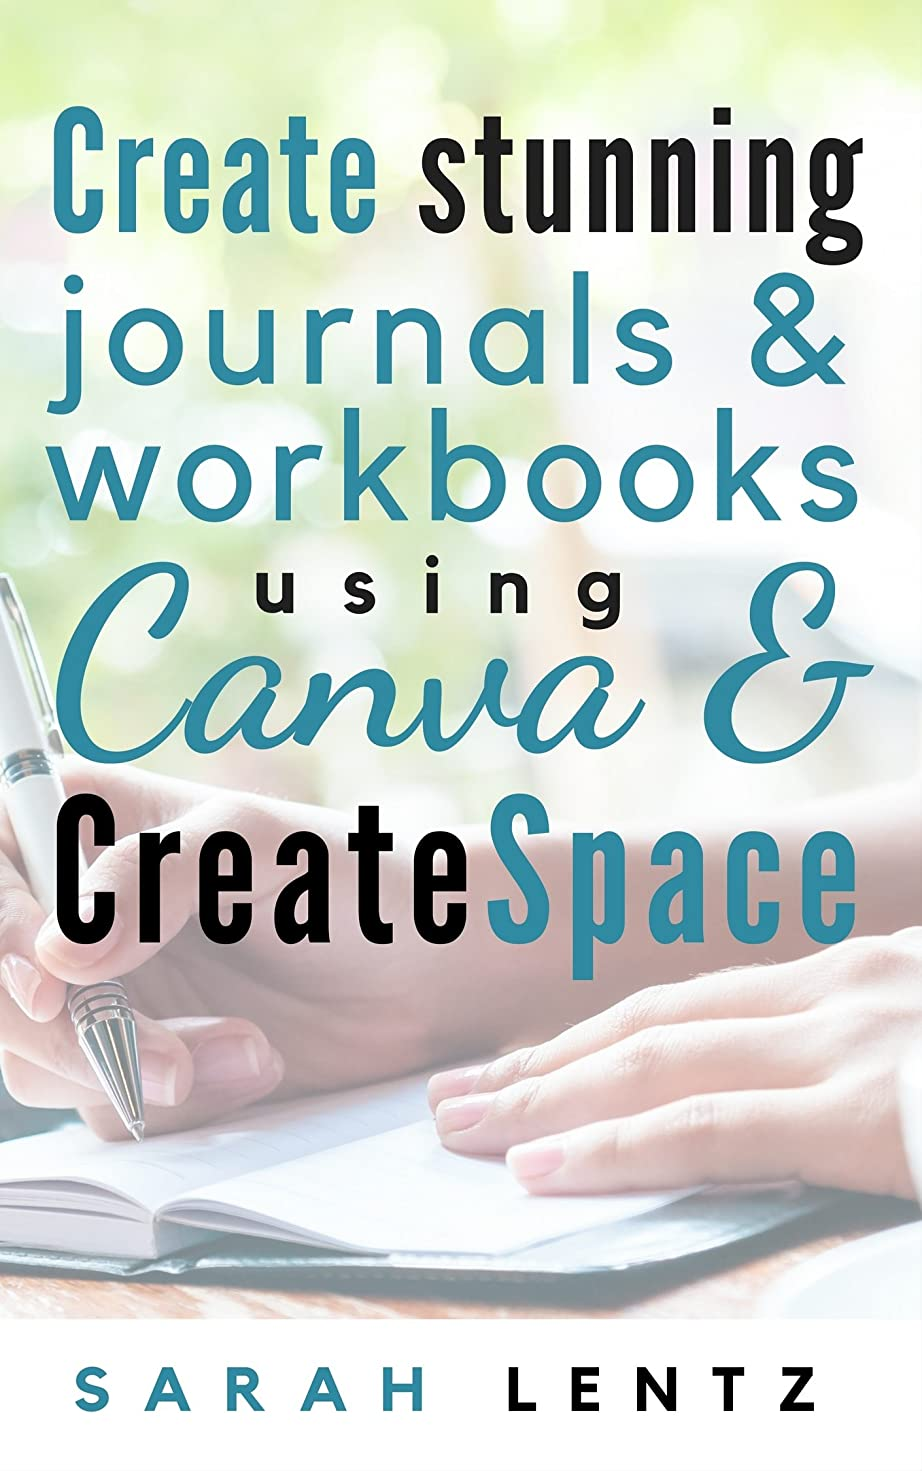 究極の退院ロッジCreate stunning journals & workbooks using Canva & CreateSpace (English Edition)